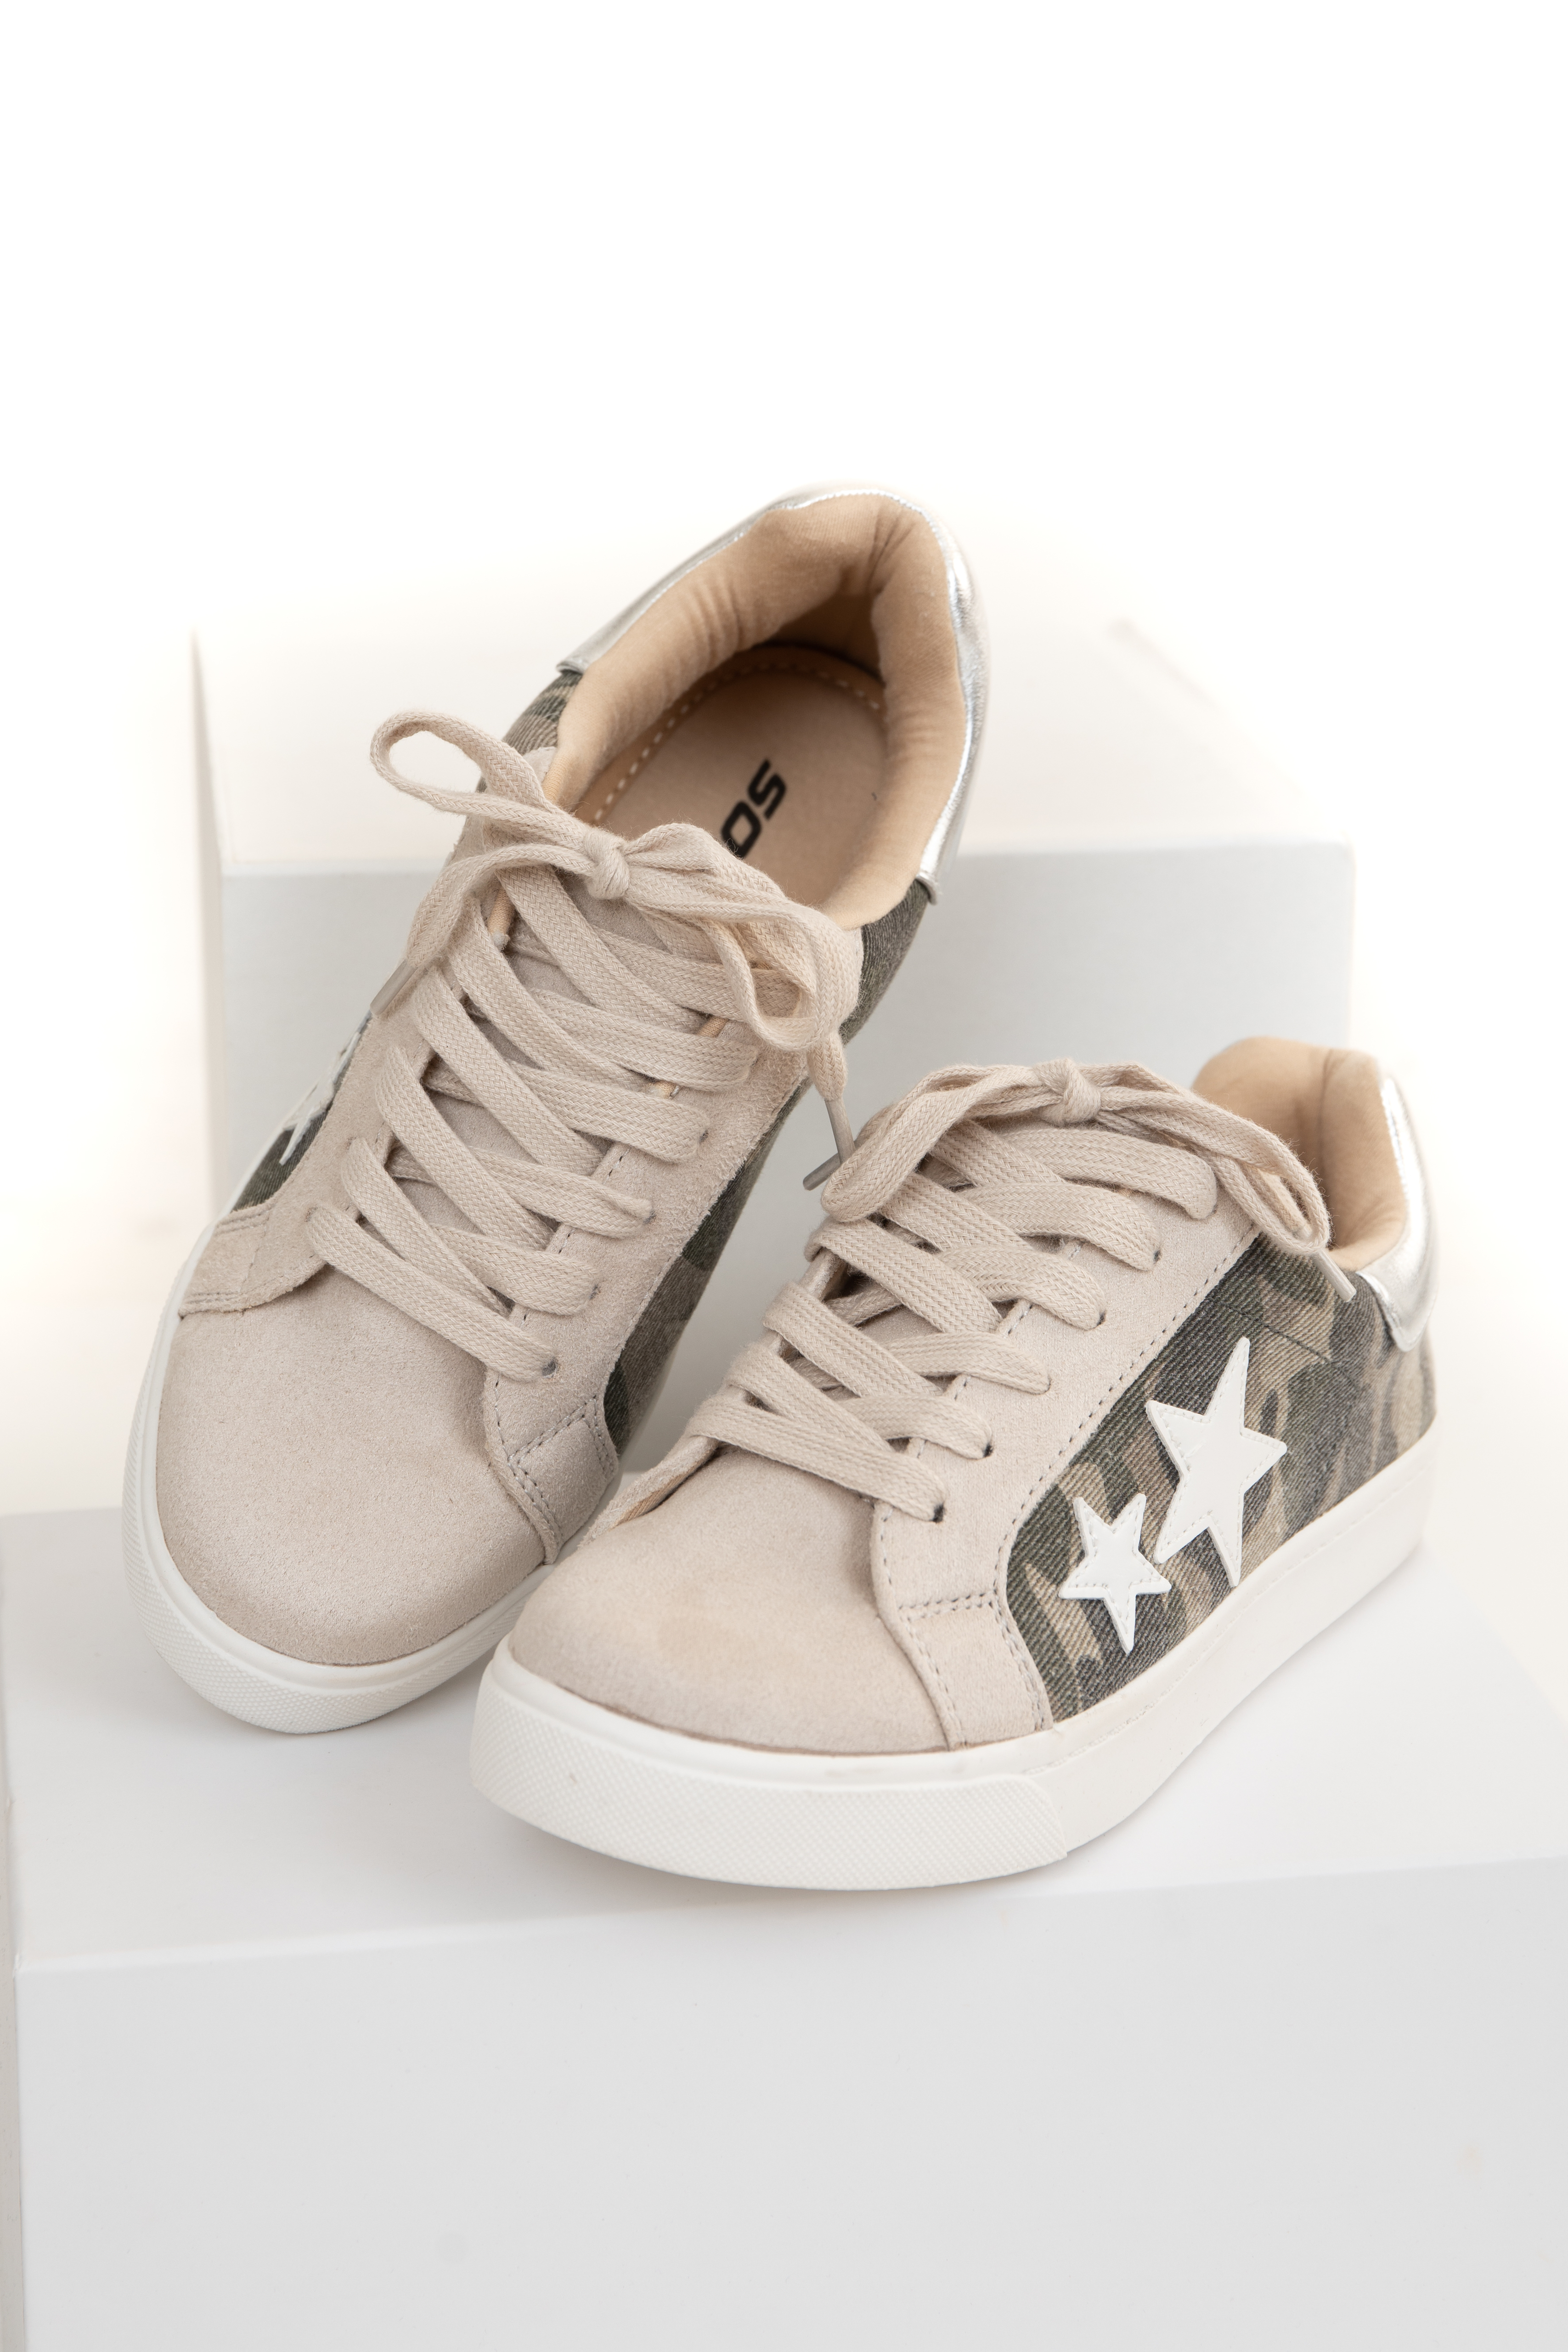 Tan and Camo Faux Suede Lace Up Sneakers with Star Detail